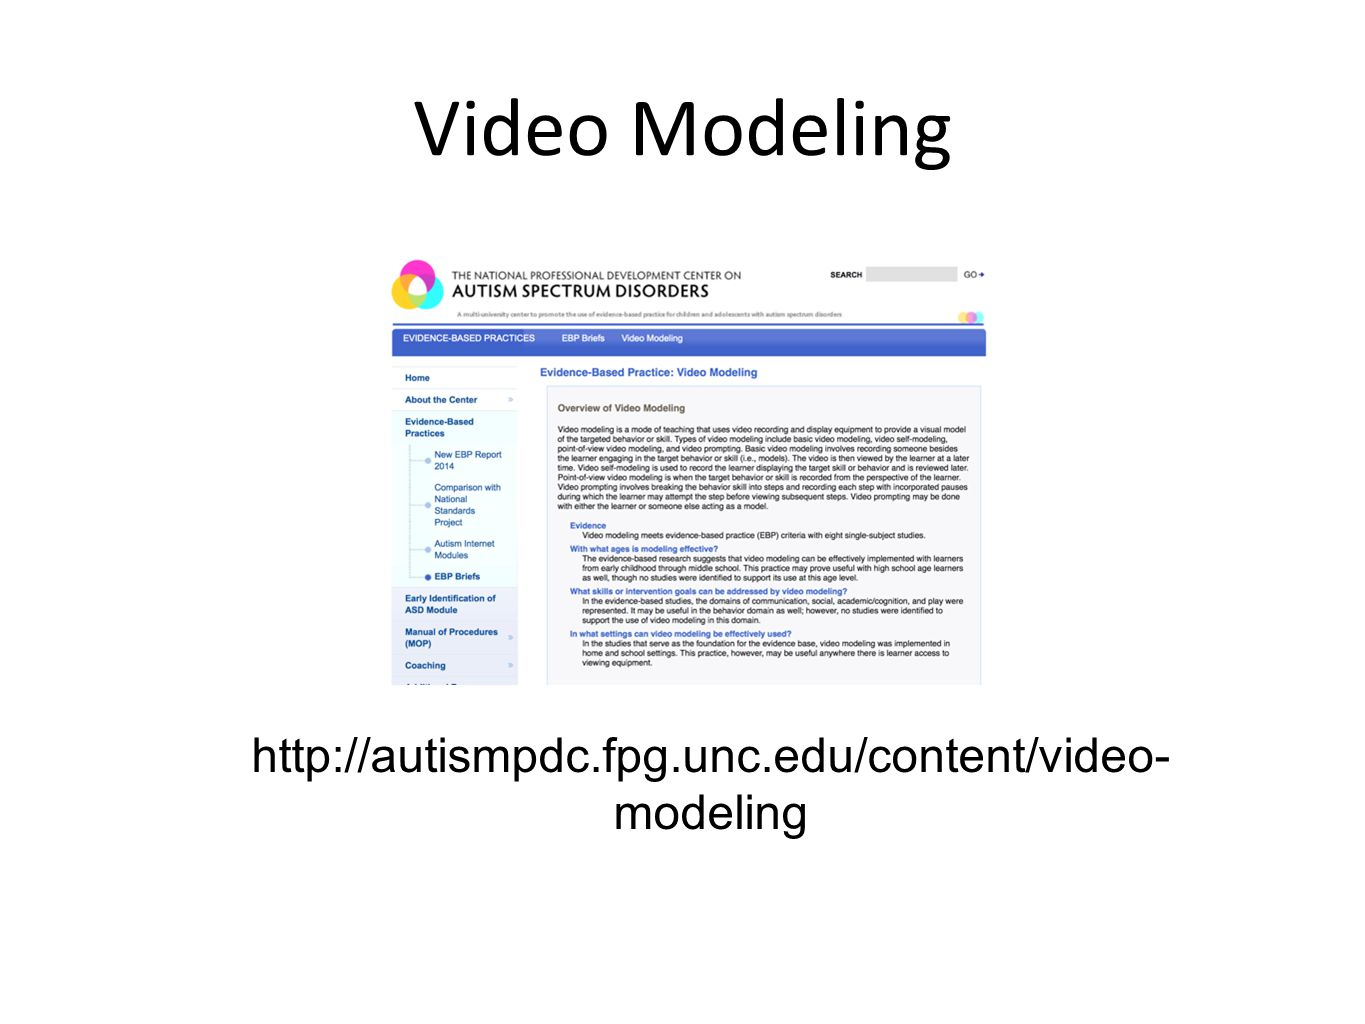 Video Modeling http://autismpdc.fpg.unc.edu/content/video-modeling